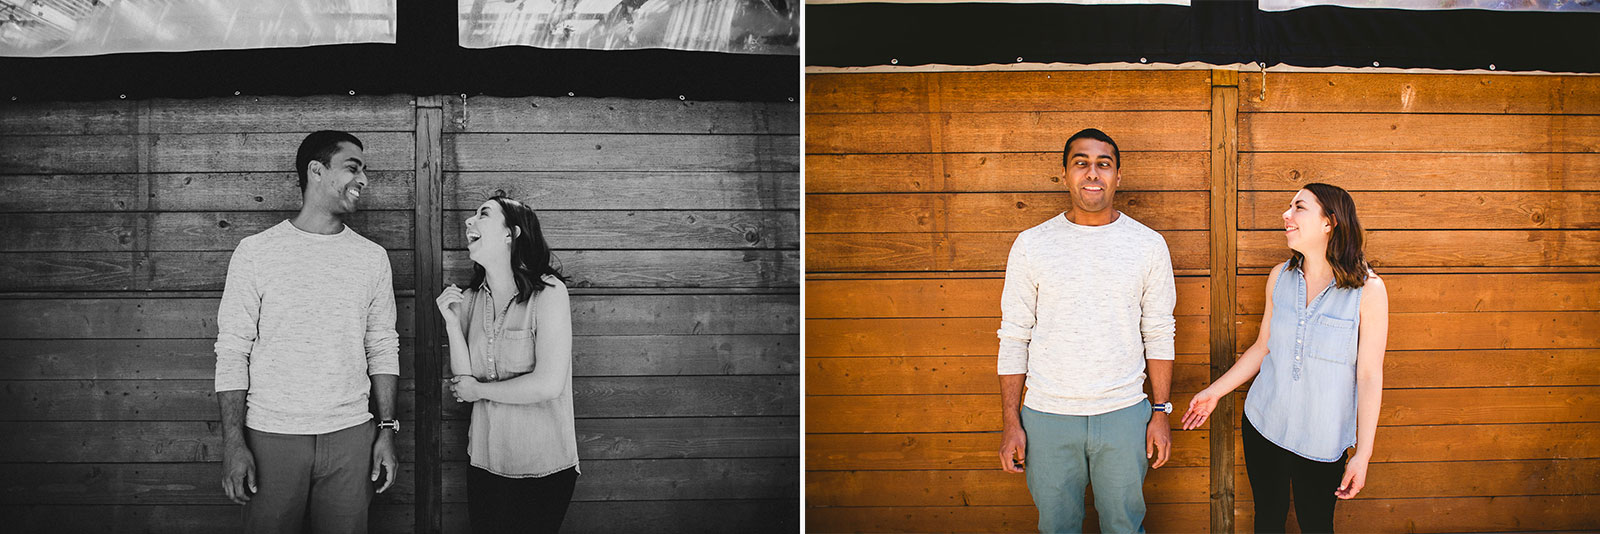 15 best engagement session photos - Lincoln Park Chicago Engagement Session at Homeslice // Kylie + Sean